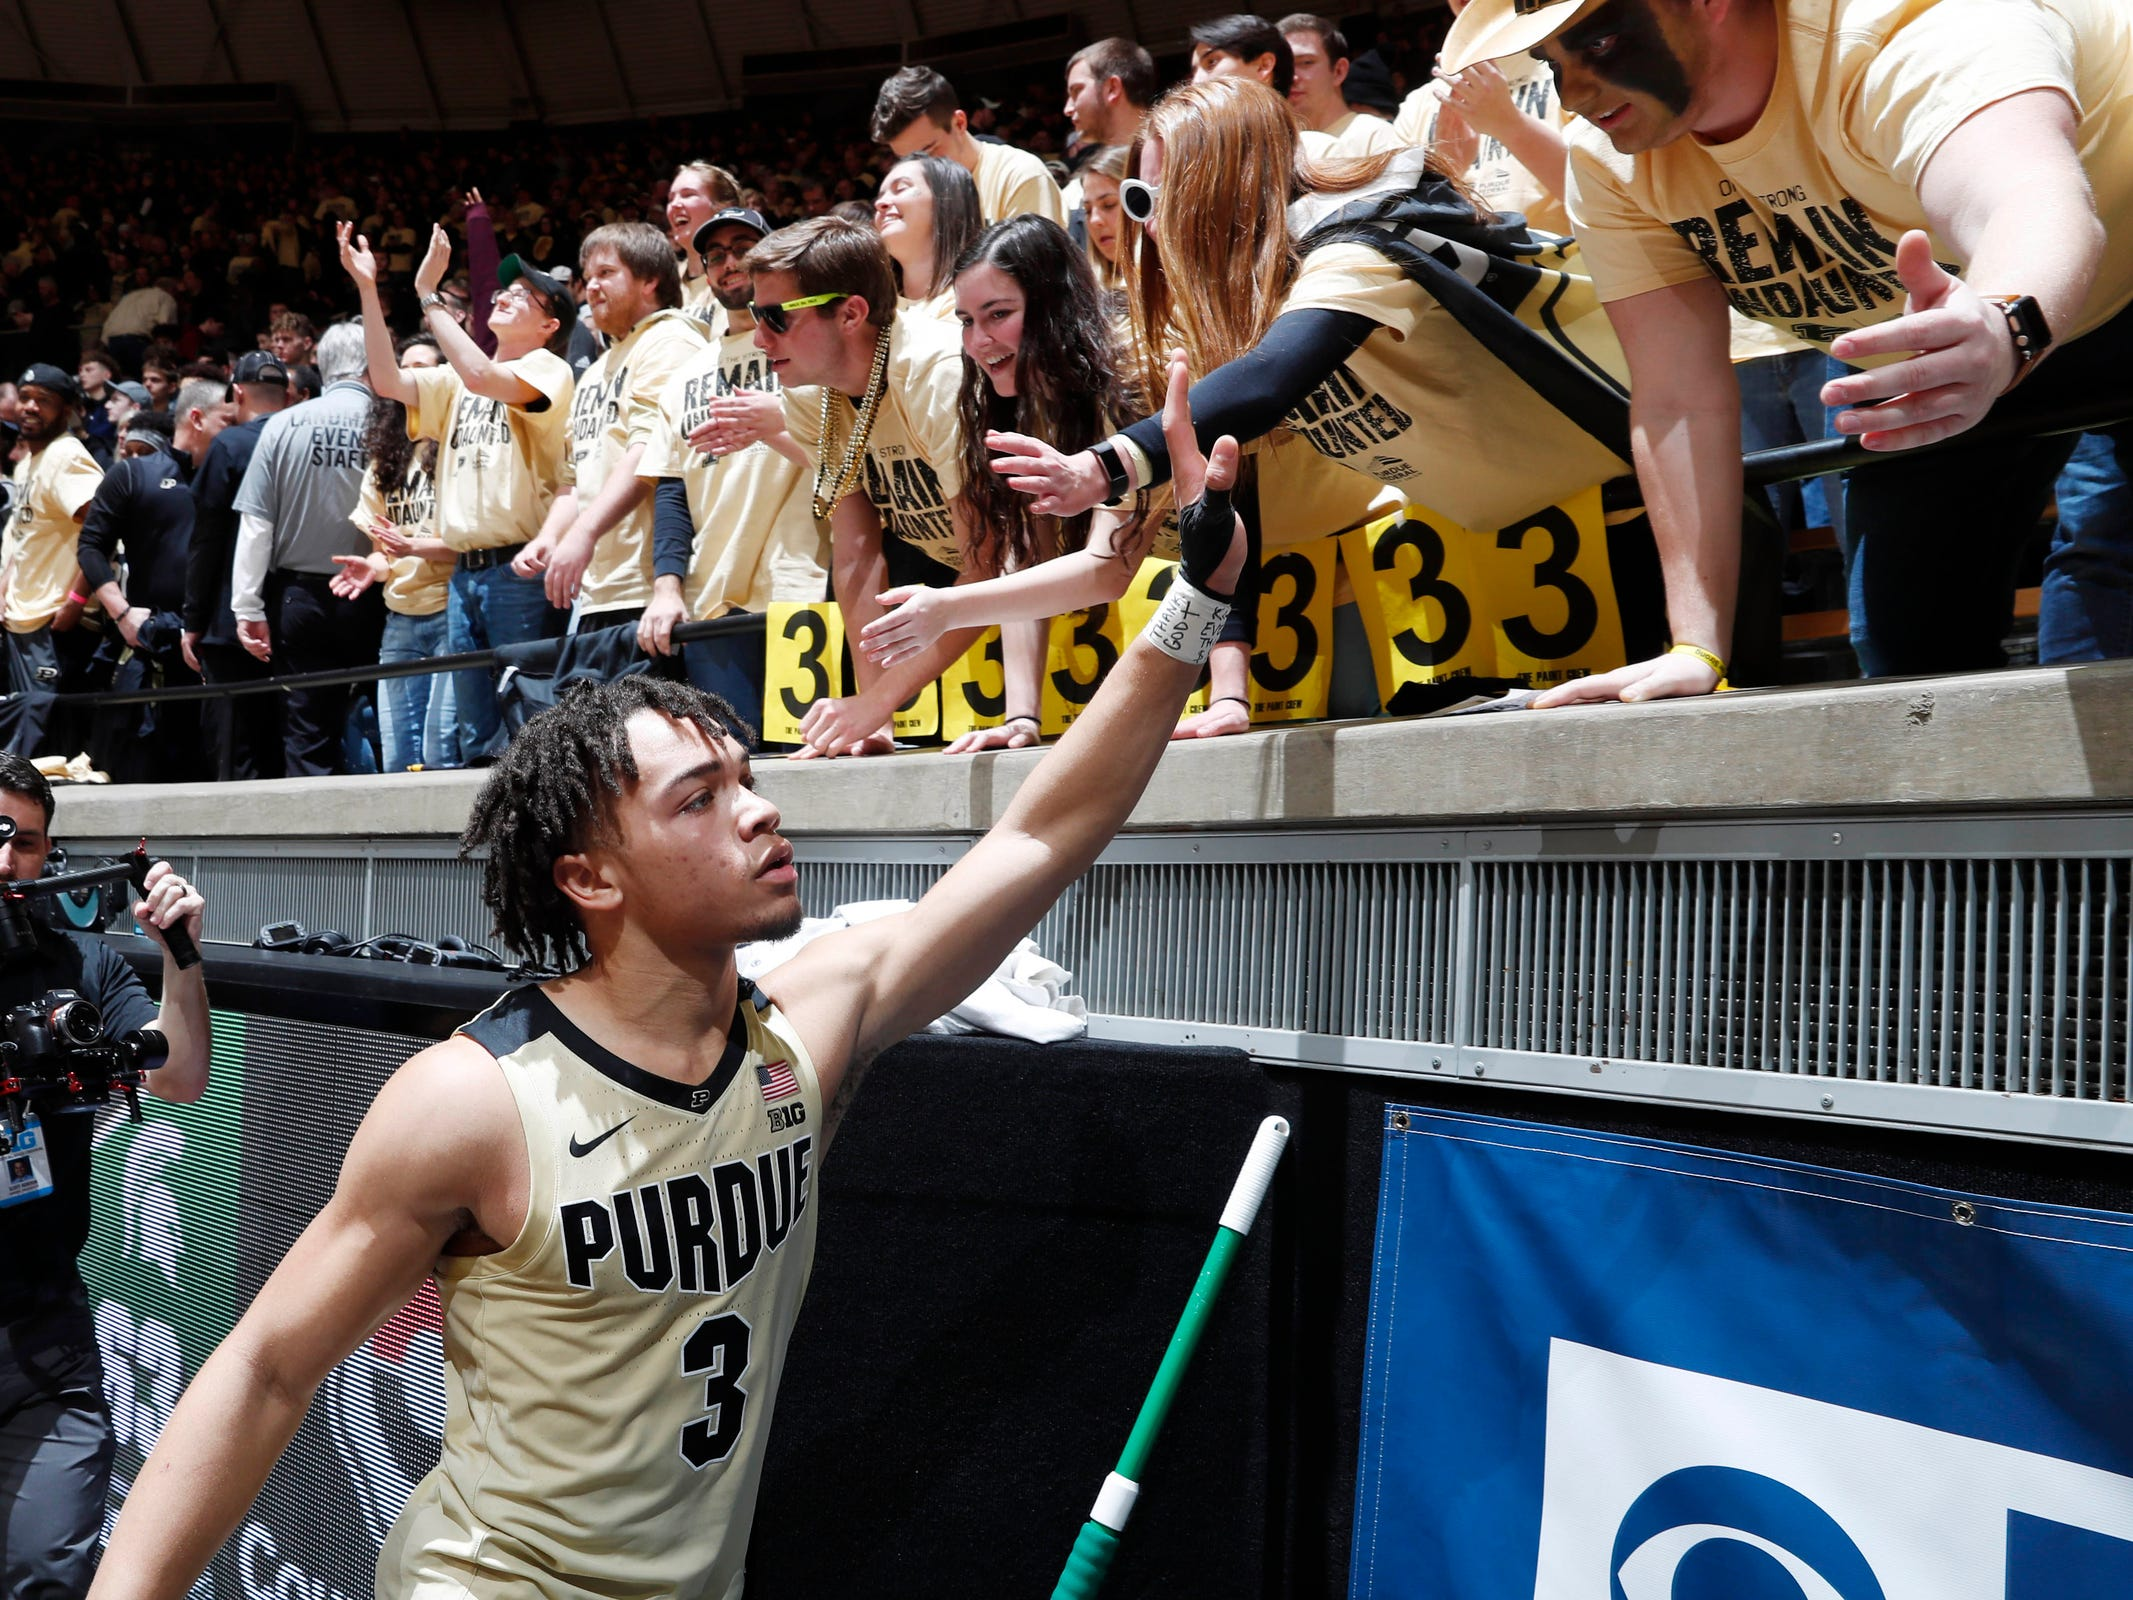 Purdue's Carsen Edwards celebrates with fans after defeating Michigan State, 73-63, at Mackey Arena in West Lafayette, Ind. on Jan. 27, 2019.